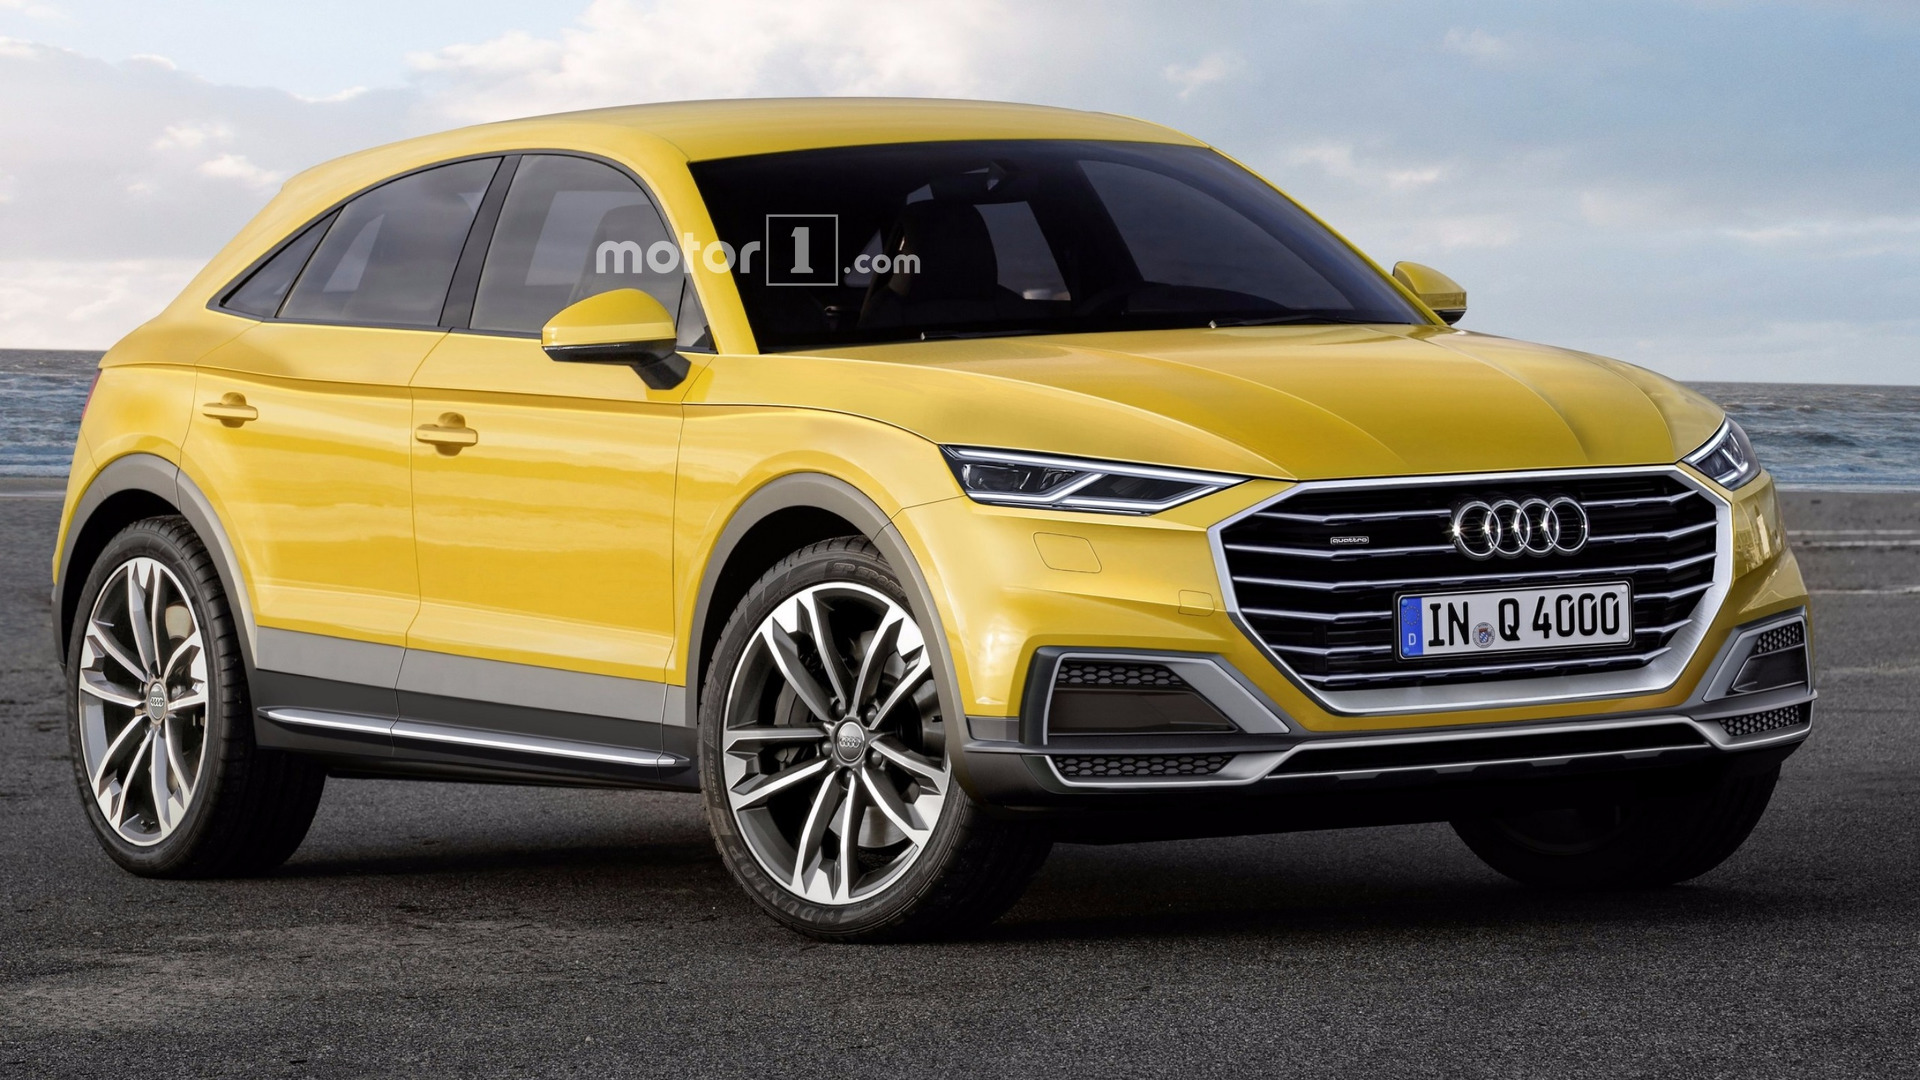 Will The 2019 Audi Q4 Look Like This?